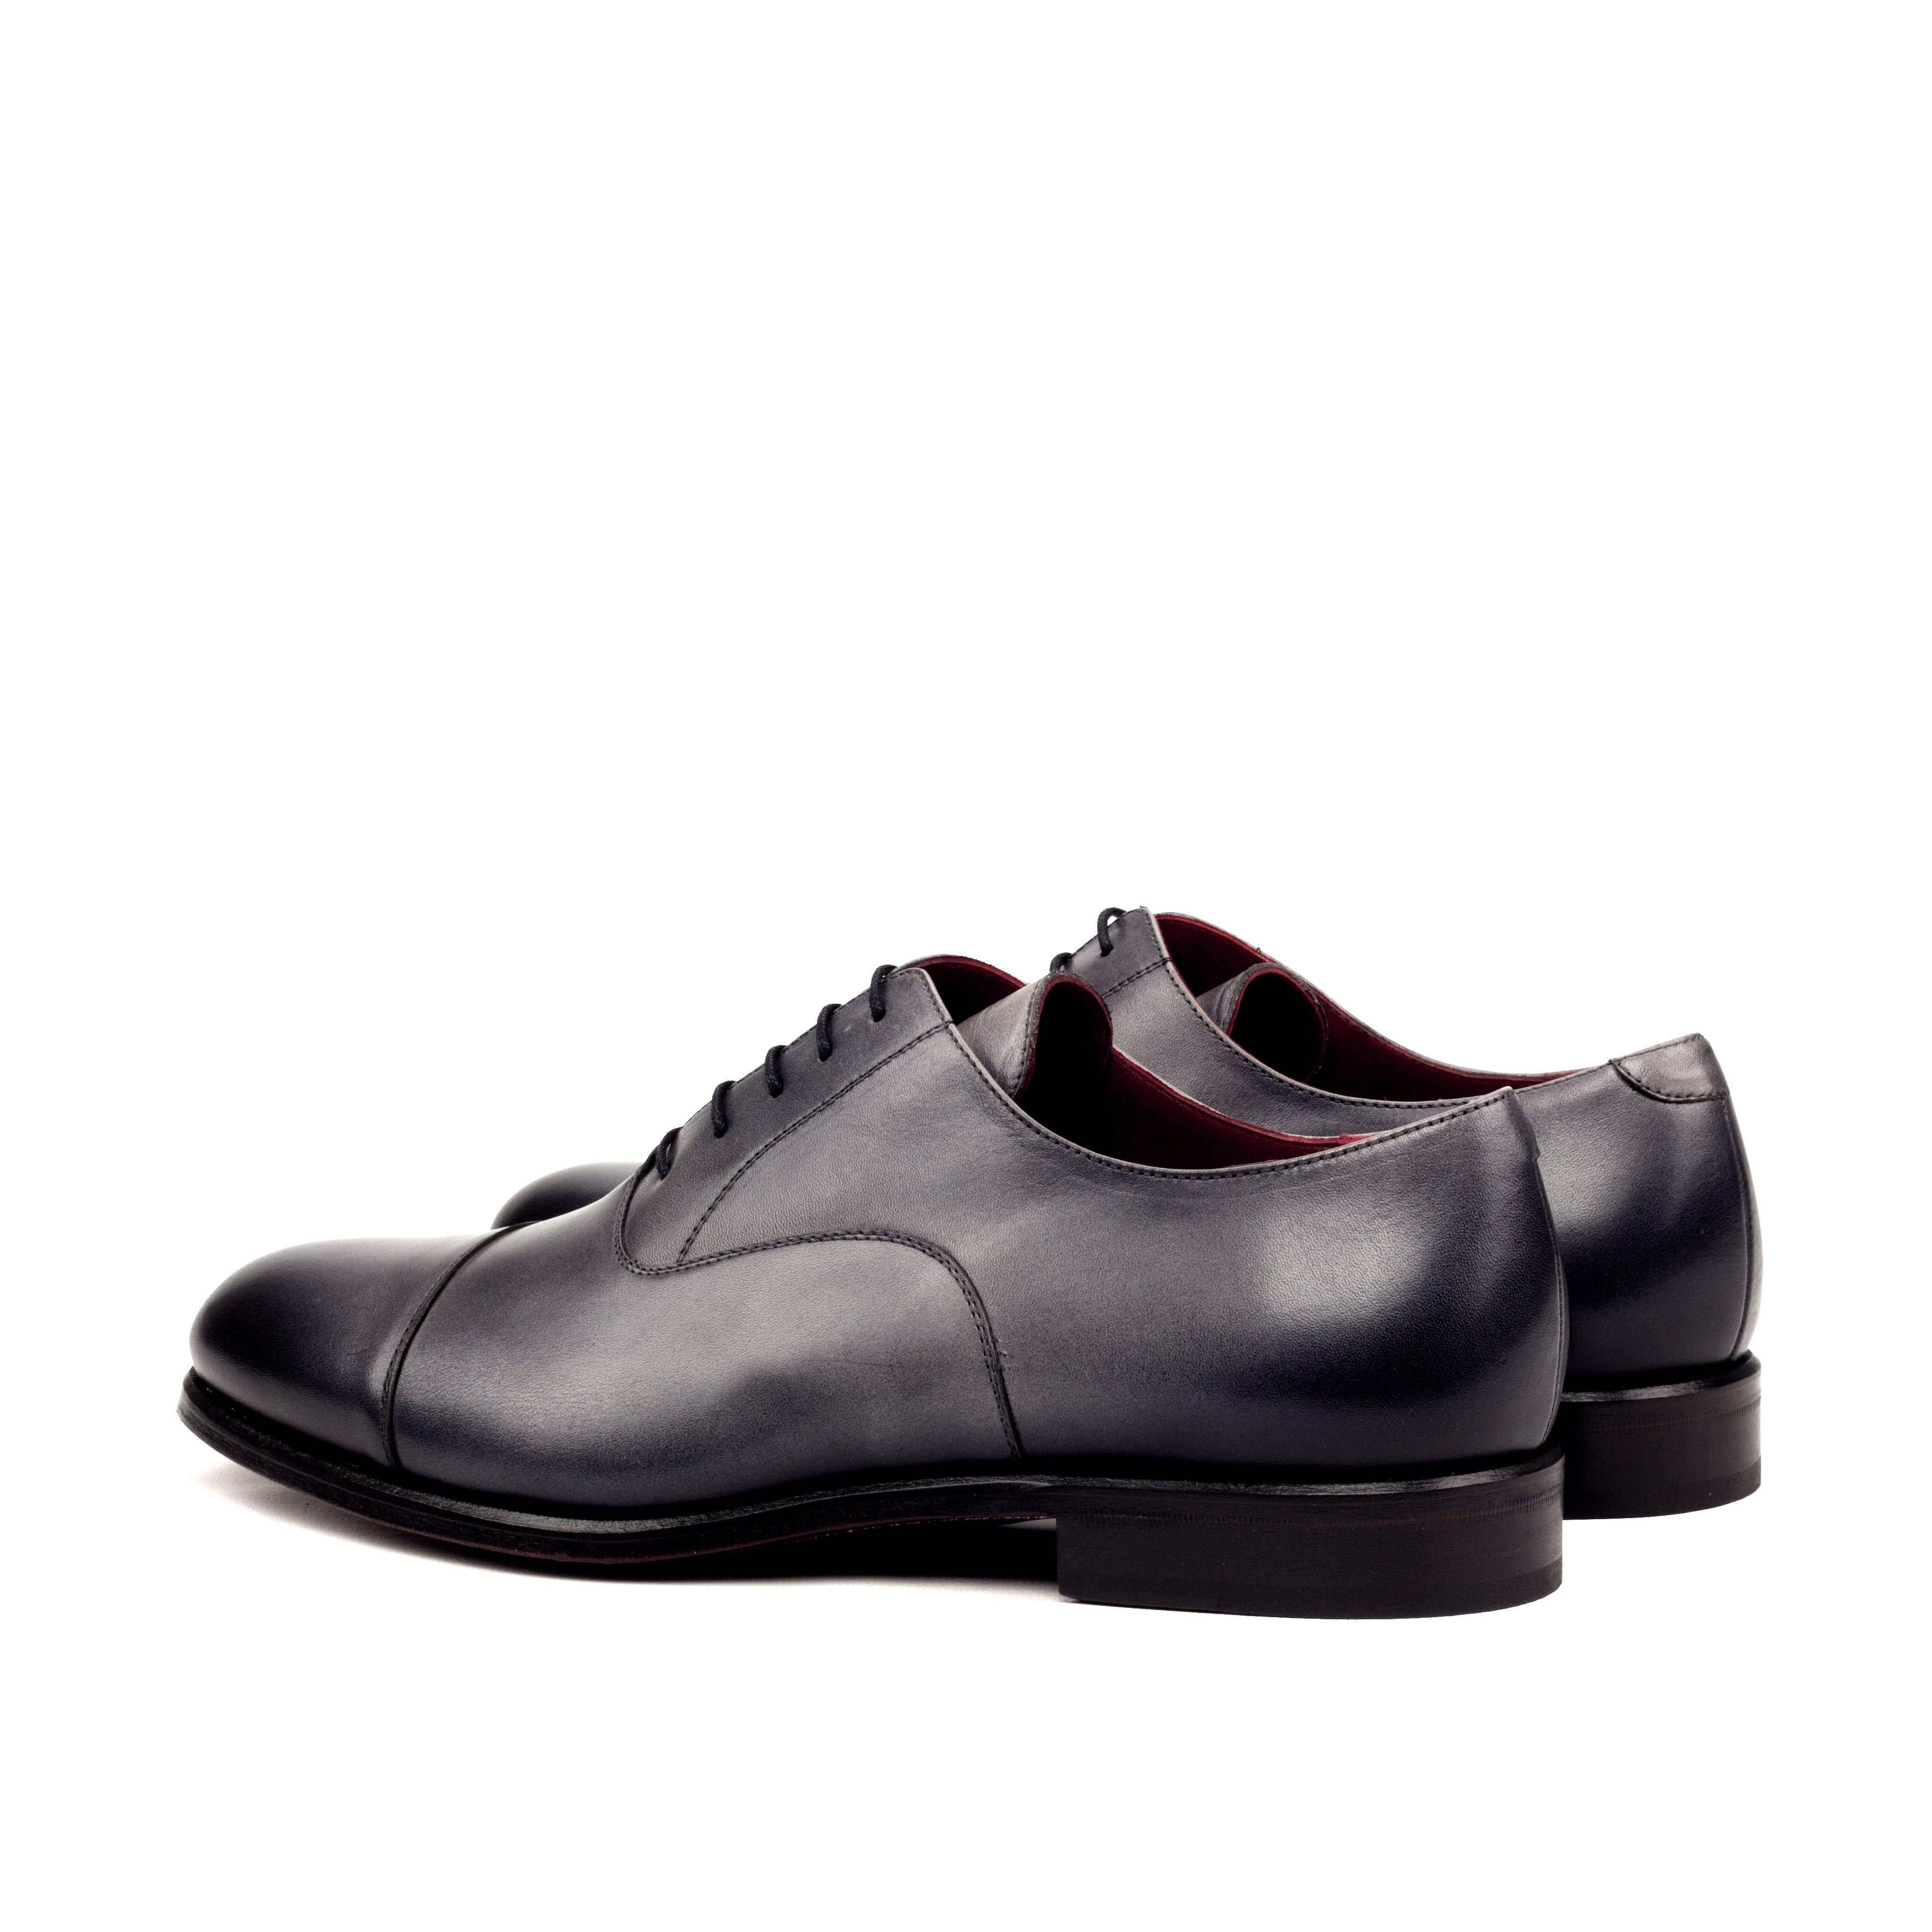 MANOR OF LONDON ''The Oxford' Burnished Grey Painted Calfskin Shoe Luxury Custom Initials Monogrammed Back Side View